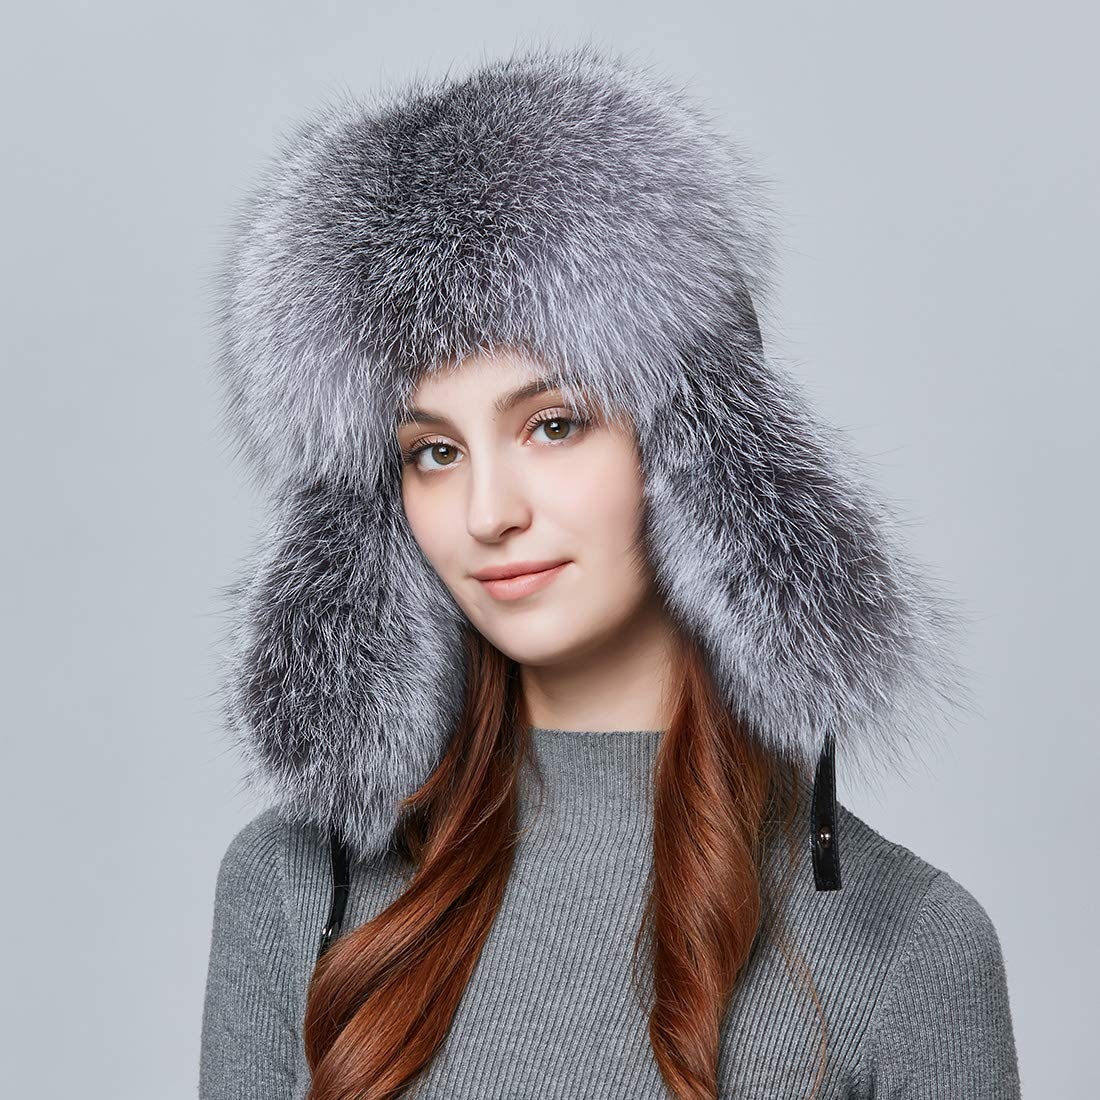 BeFur Fashion Women Winter Warm Fox Fur Lamb Leather Caps Bomber Hat Russian Protection Patchwork Causal Hat Caps by BeFur (Image #2)